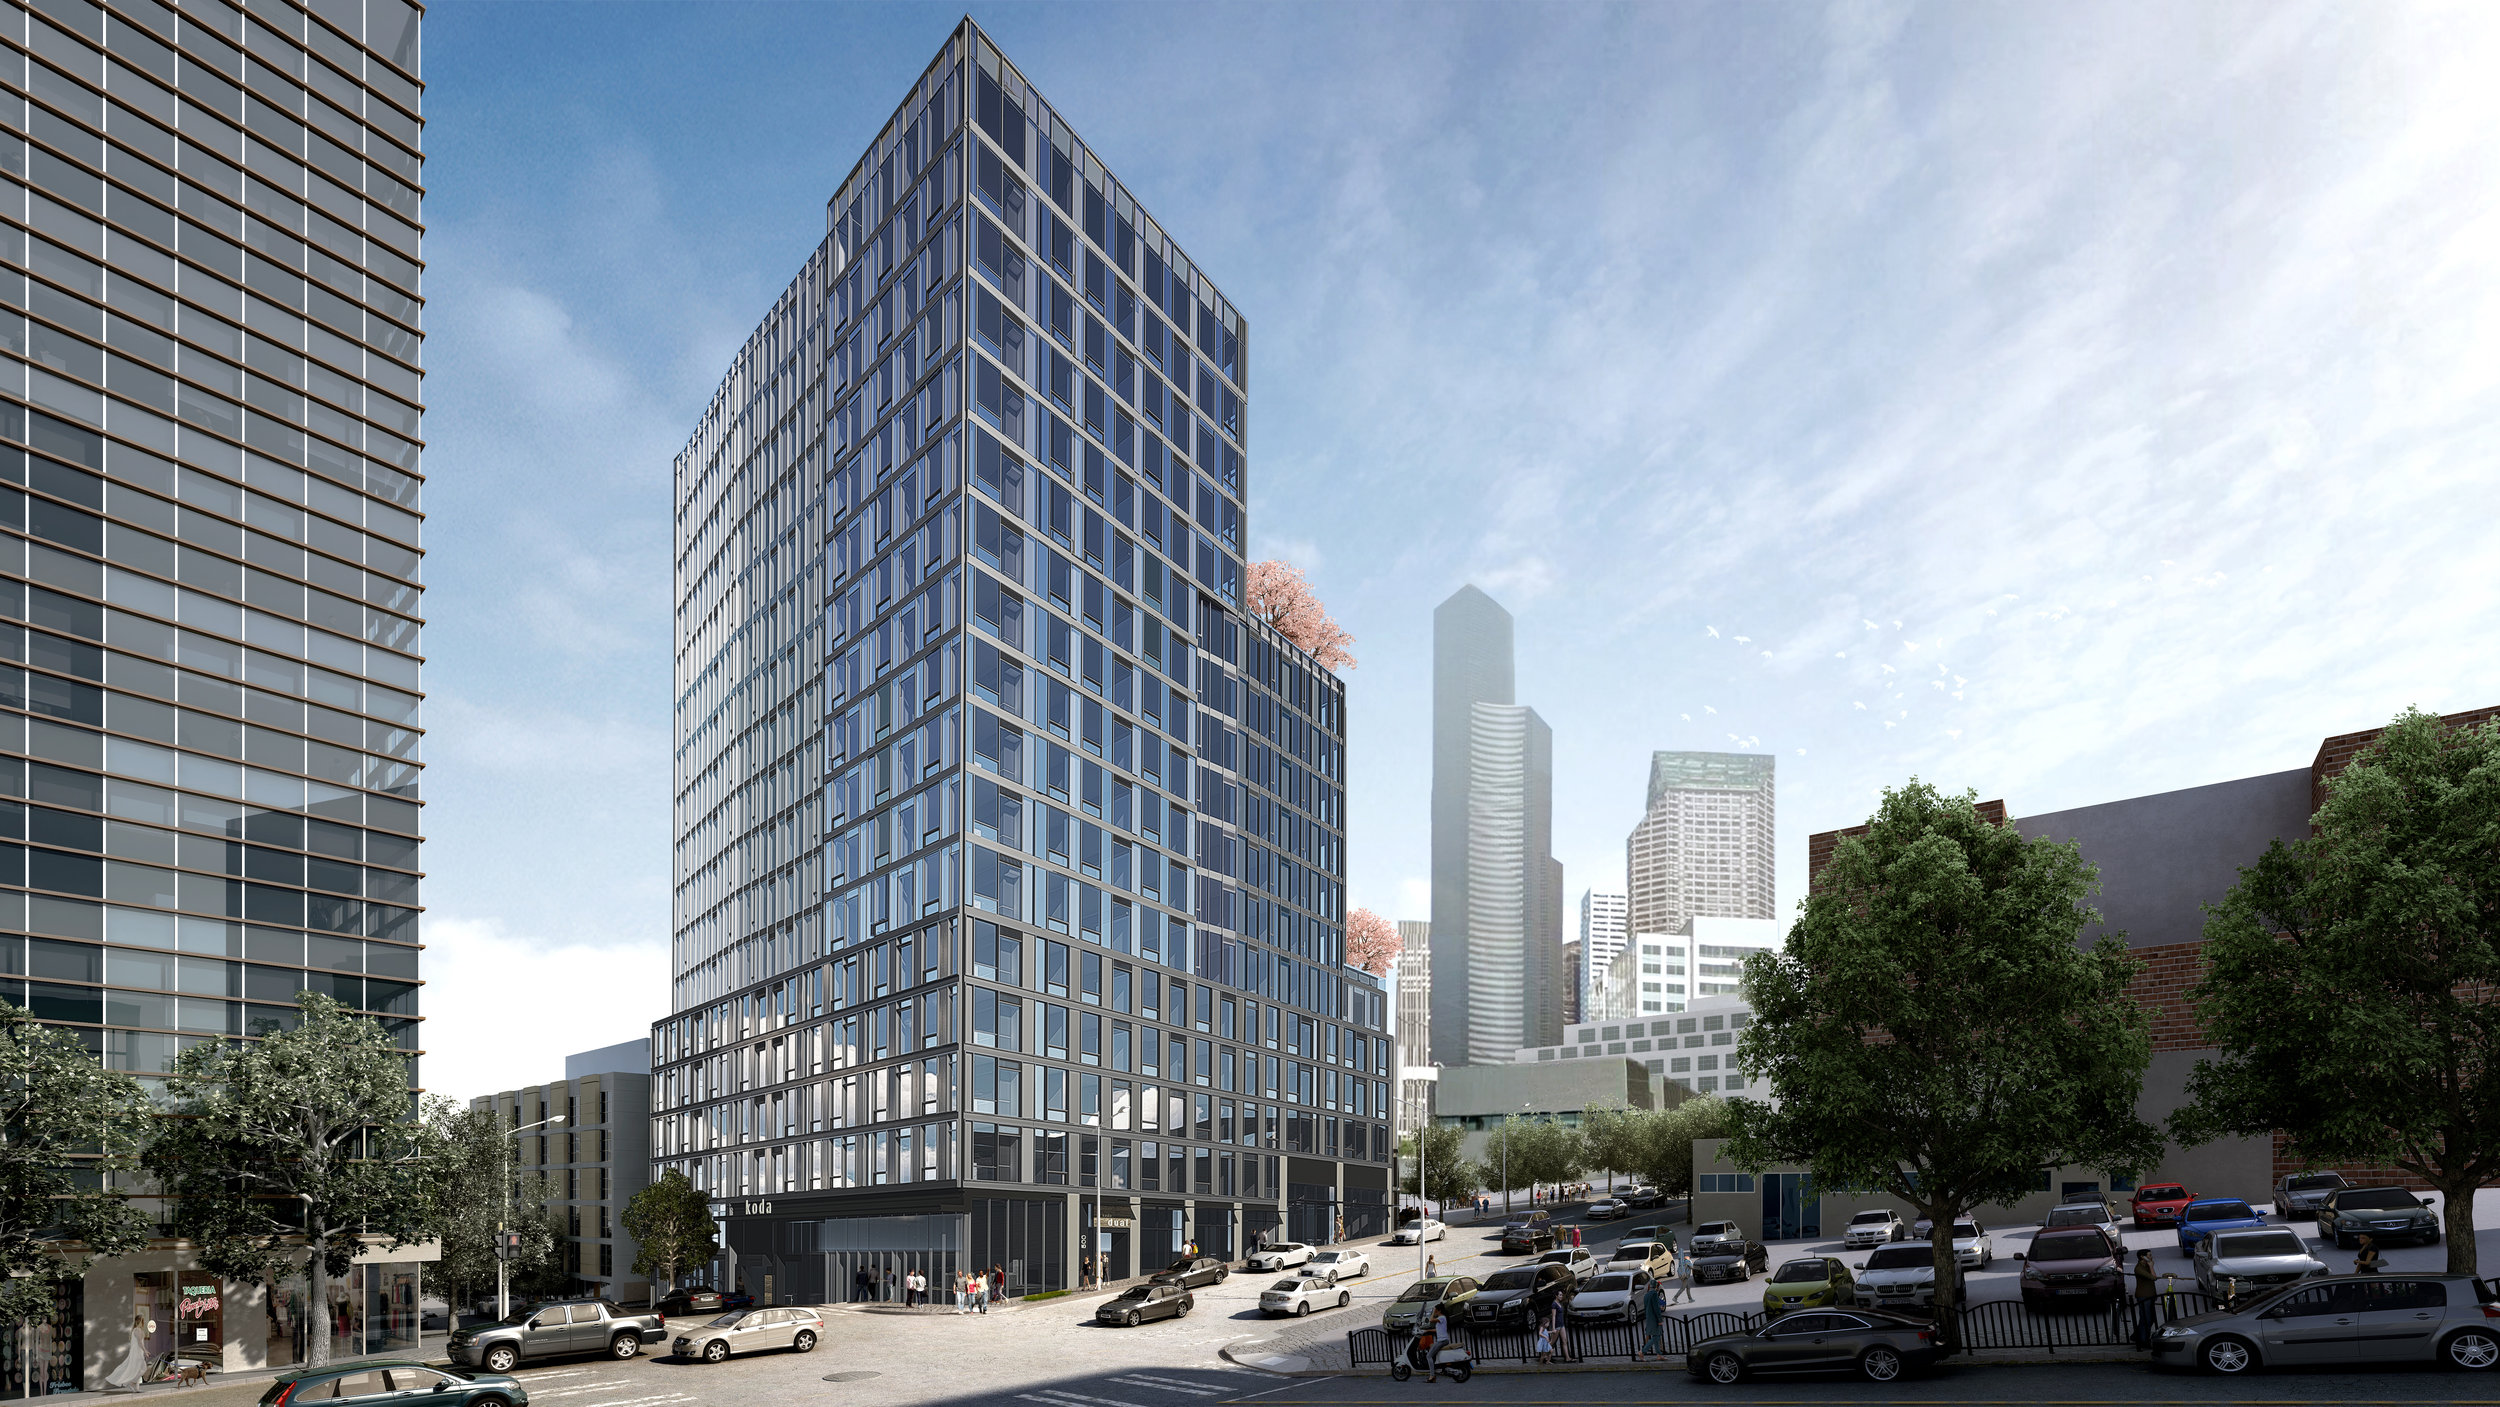 PICTURED ABOVE: KODA is a brilliantly conceived new condominium development at the intersection of Downtown Seattle, Pioneer Square and the Nihonmachi (Japantown) area that serves as the gateway to the eclectic and historic International District.